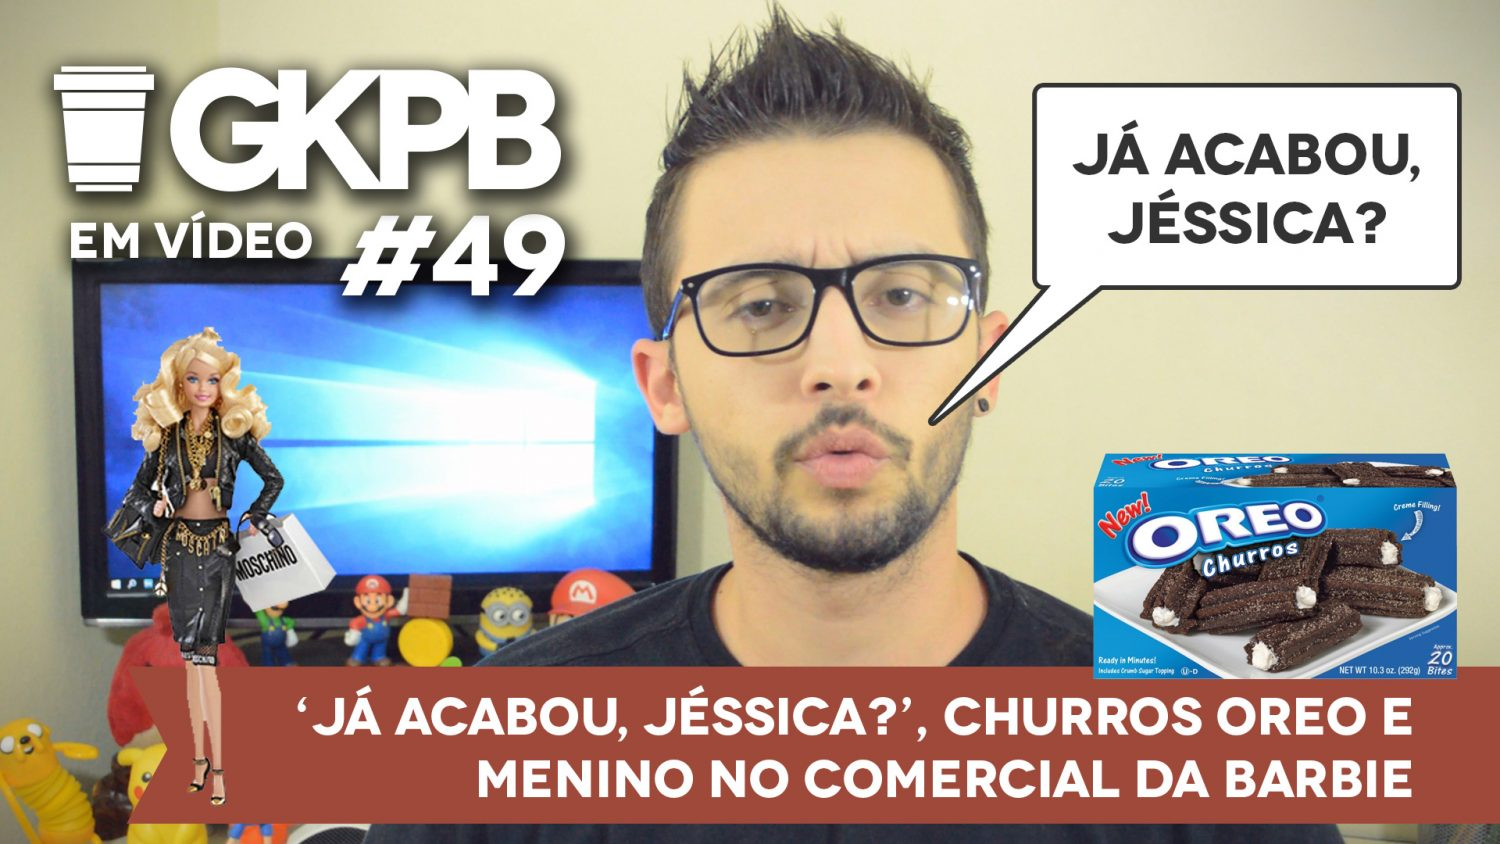 gkpb-em-video-49-ja-acabou-jessica-oreo-churros-comercial-barbie-moschino-blog-geek-publicitario